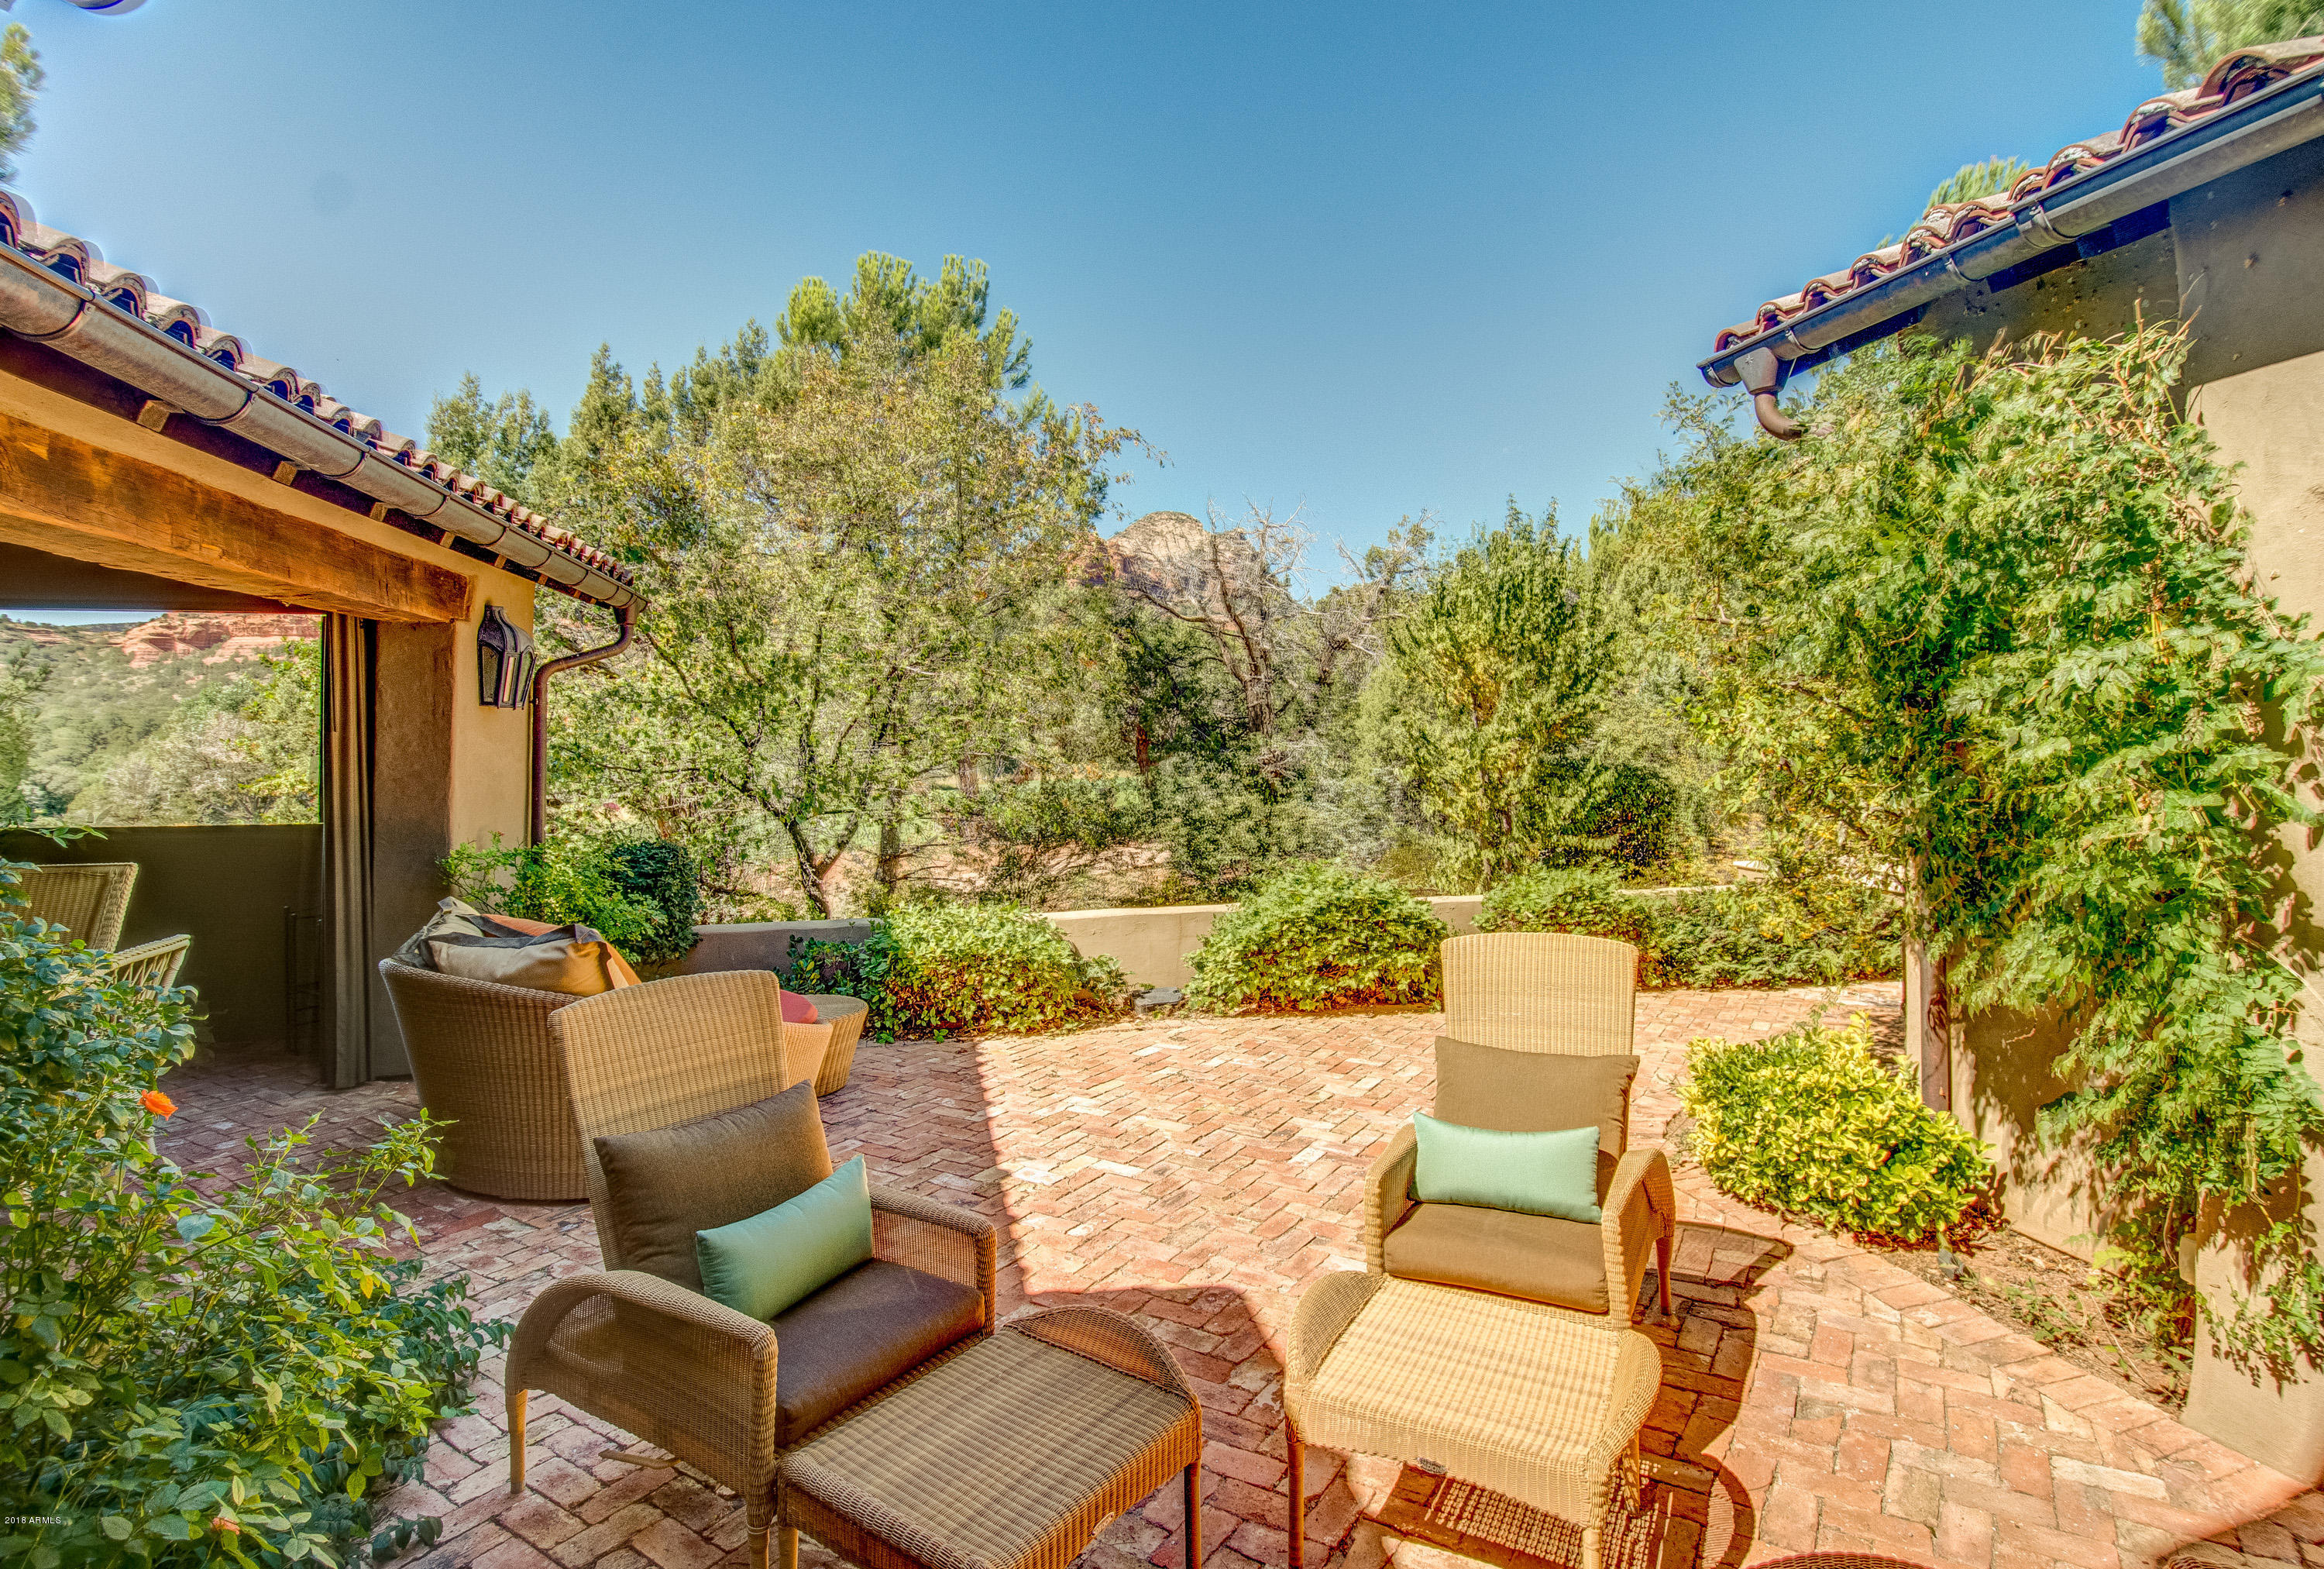 MLS 5748098 155 SECRET CANYON DR A-6 Circle, Sedona, AZ Sedona AZ Scenic